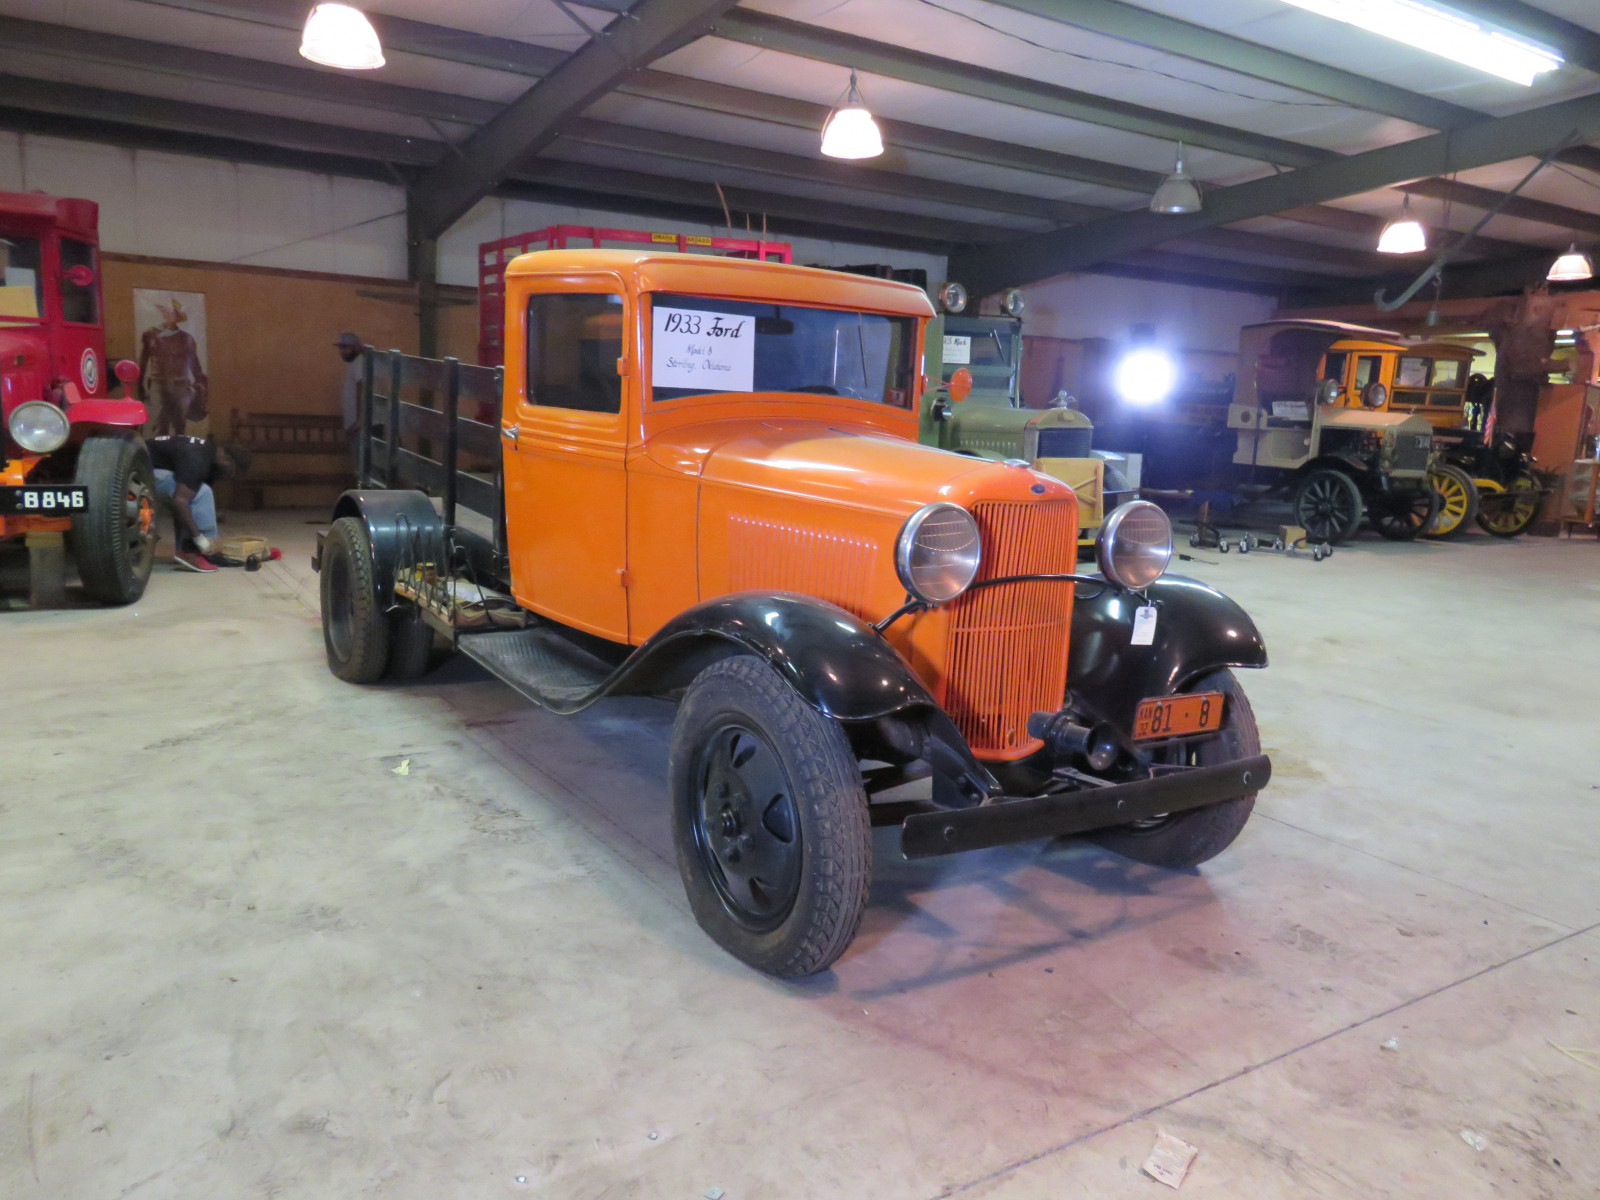 1932 1/2 Ford Model B Stake Bed Truck - Image 6